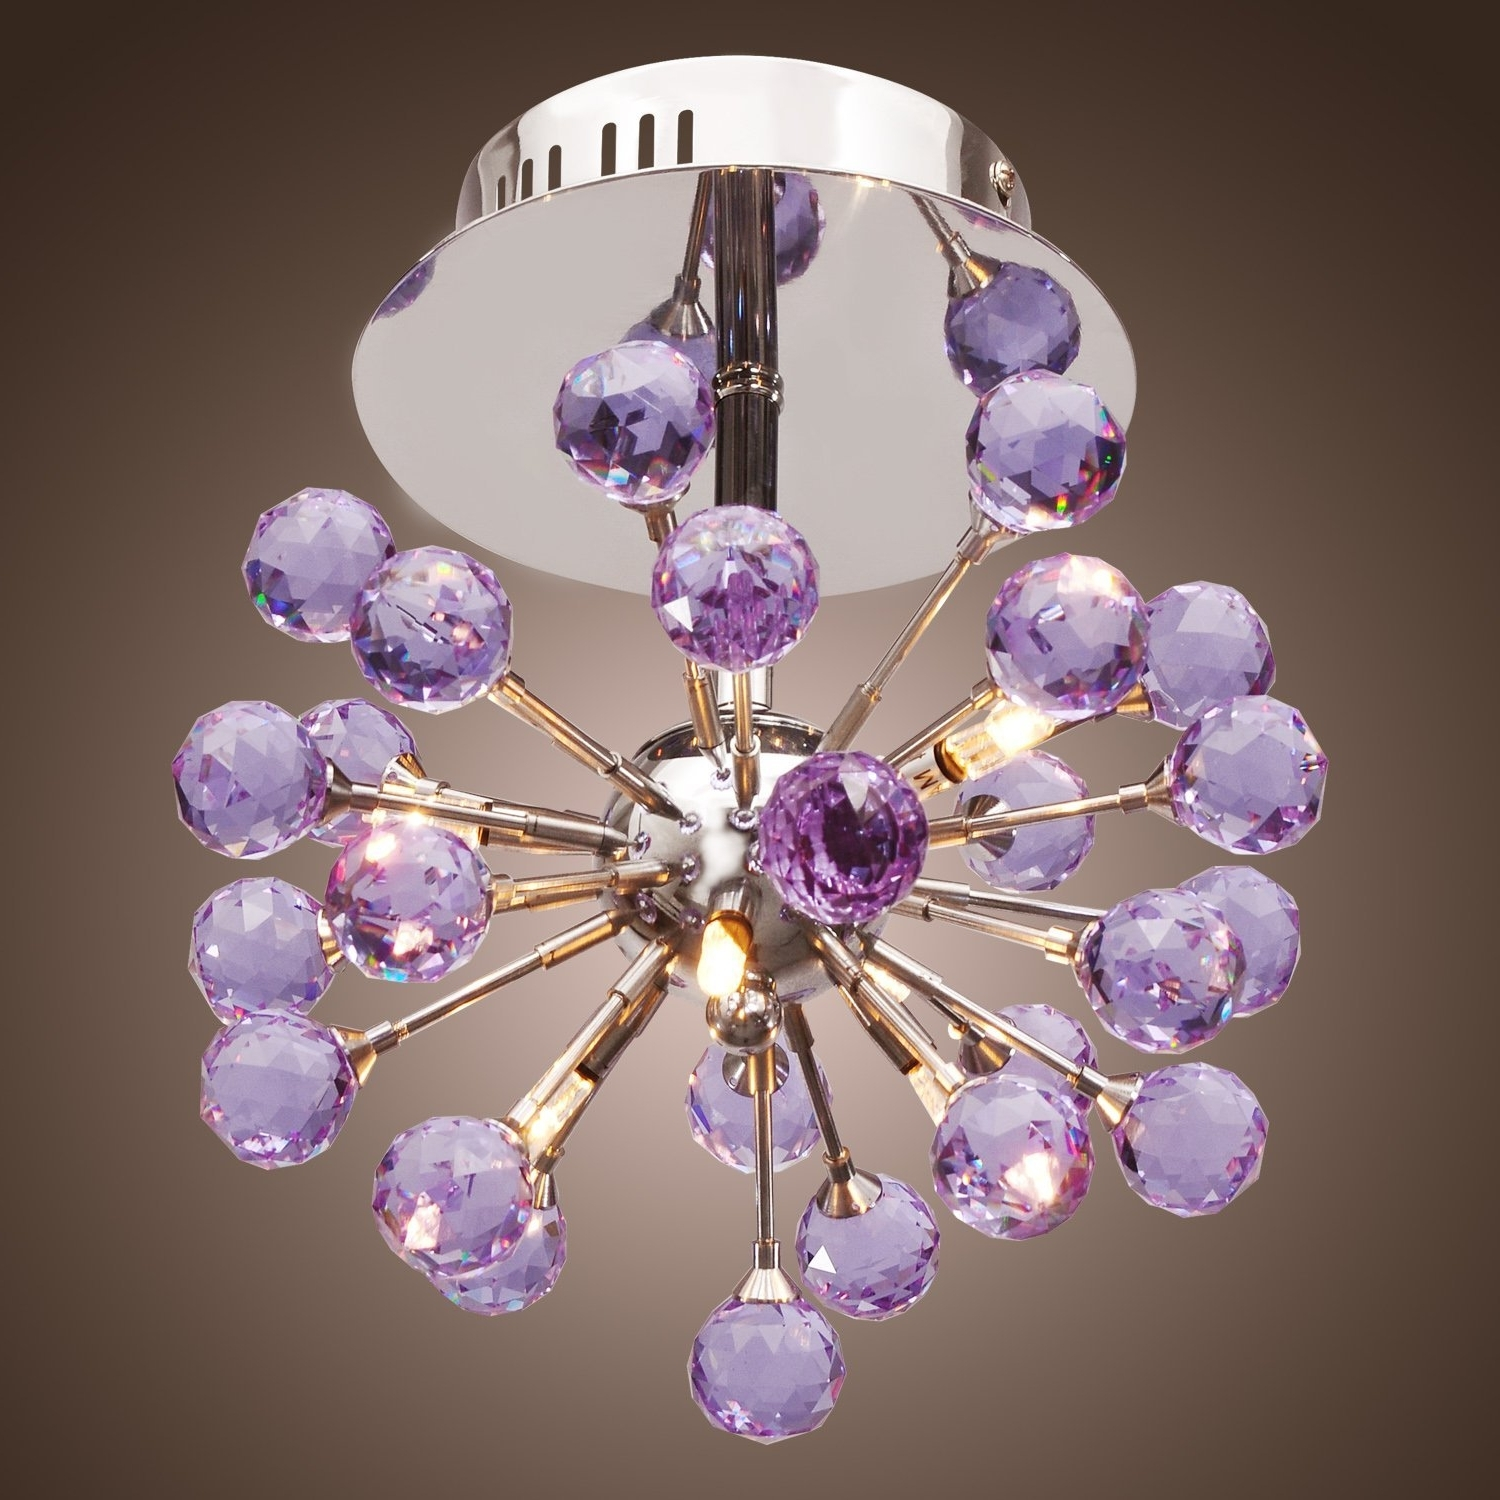 Trendy Lightinthebox 6 Light Floral Shape K9 Crystal Ceiling Light Purple For Purple Crystal Chandelier Lighting (View 14 of 15)